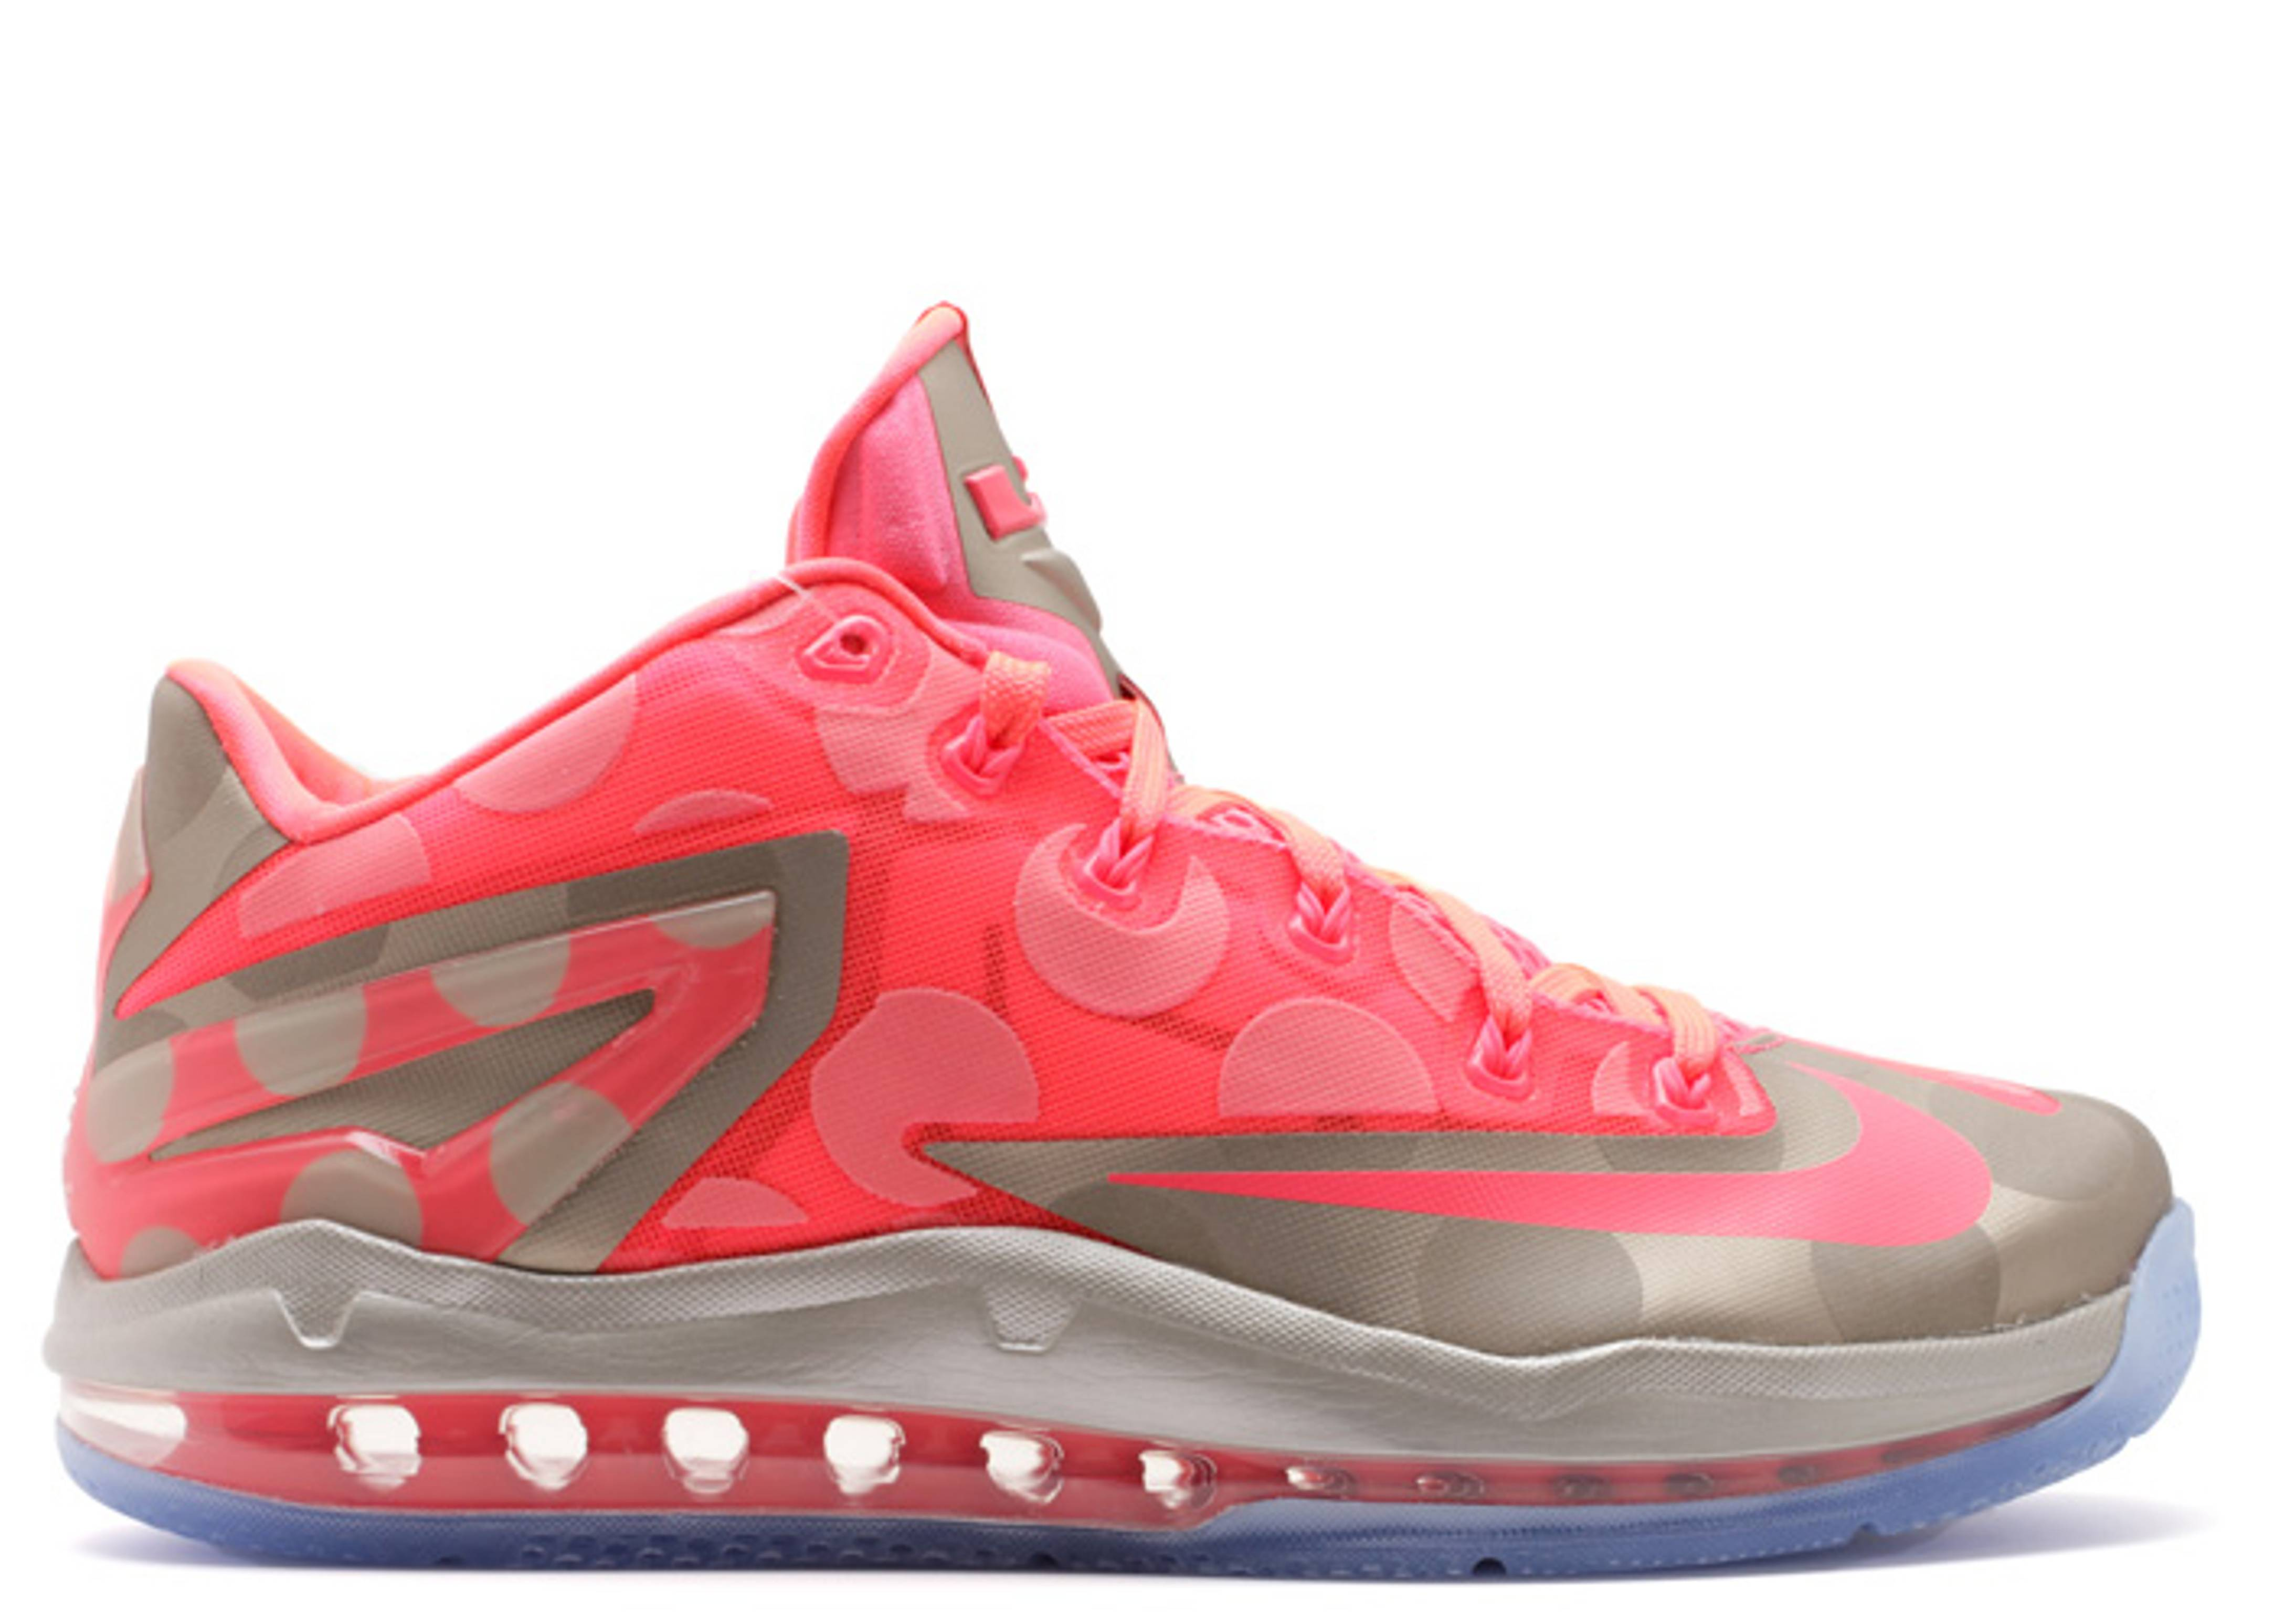 f6216f5ec8a75 max lebron 11 low collection